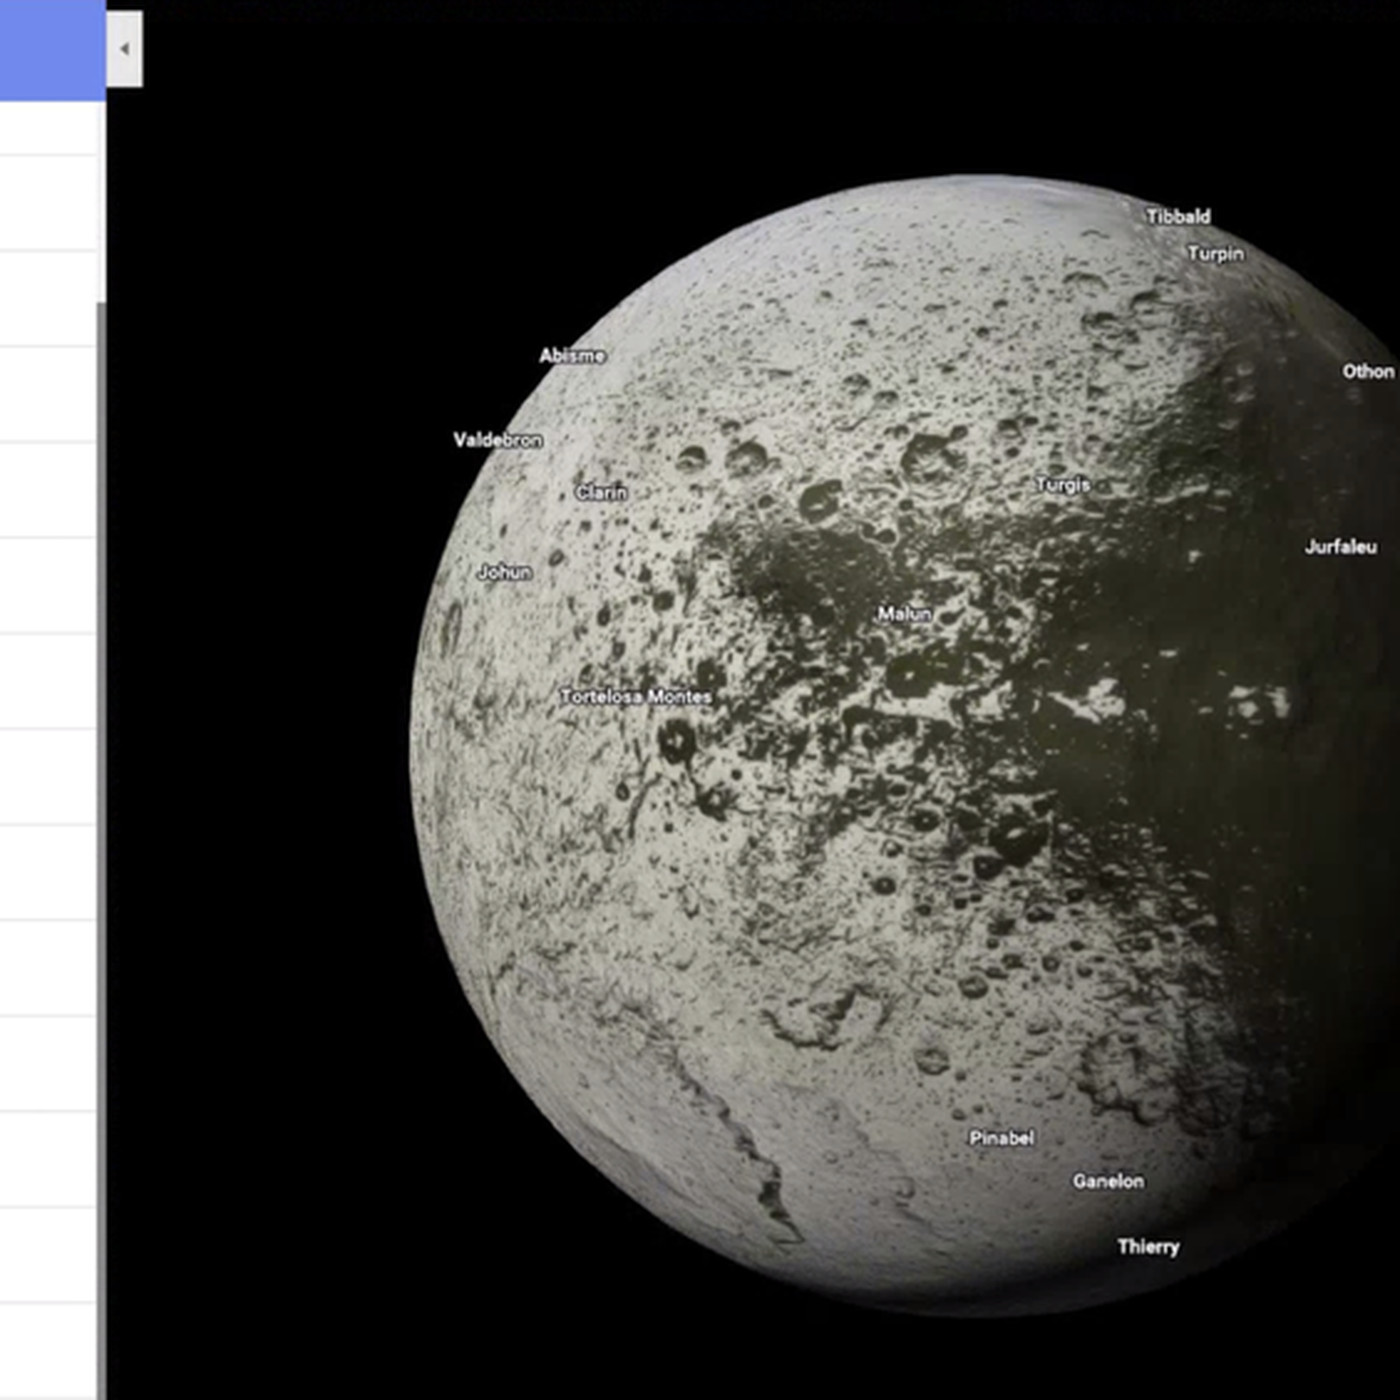 Google Maps now lets you explore more than a dozen planets ... on earth timeline map, earth radius map, earth atlas map, earth circle map, earth surface map, earth ball map, earth orbit map, earth normal map, earth geoid map, earth hexagon map, earth parallel map, earth hemisphere map, earth heat map, earth cylinder map, earth topology map, earth grid map, earth square map, earth gravity map,